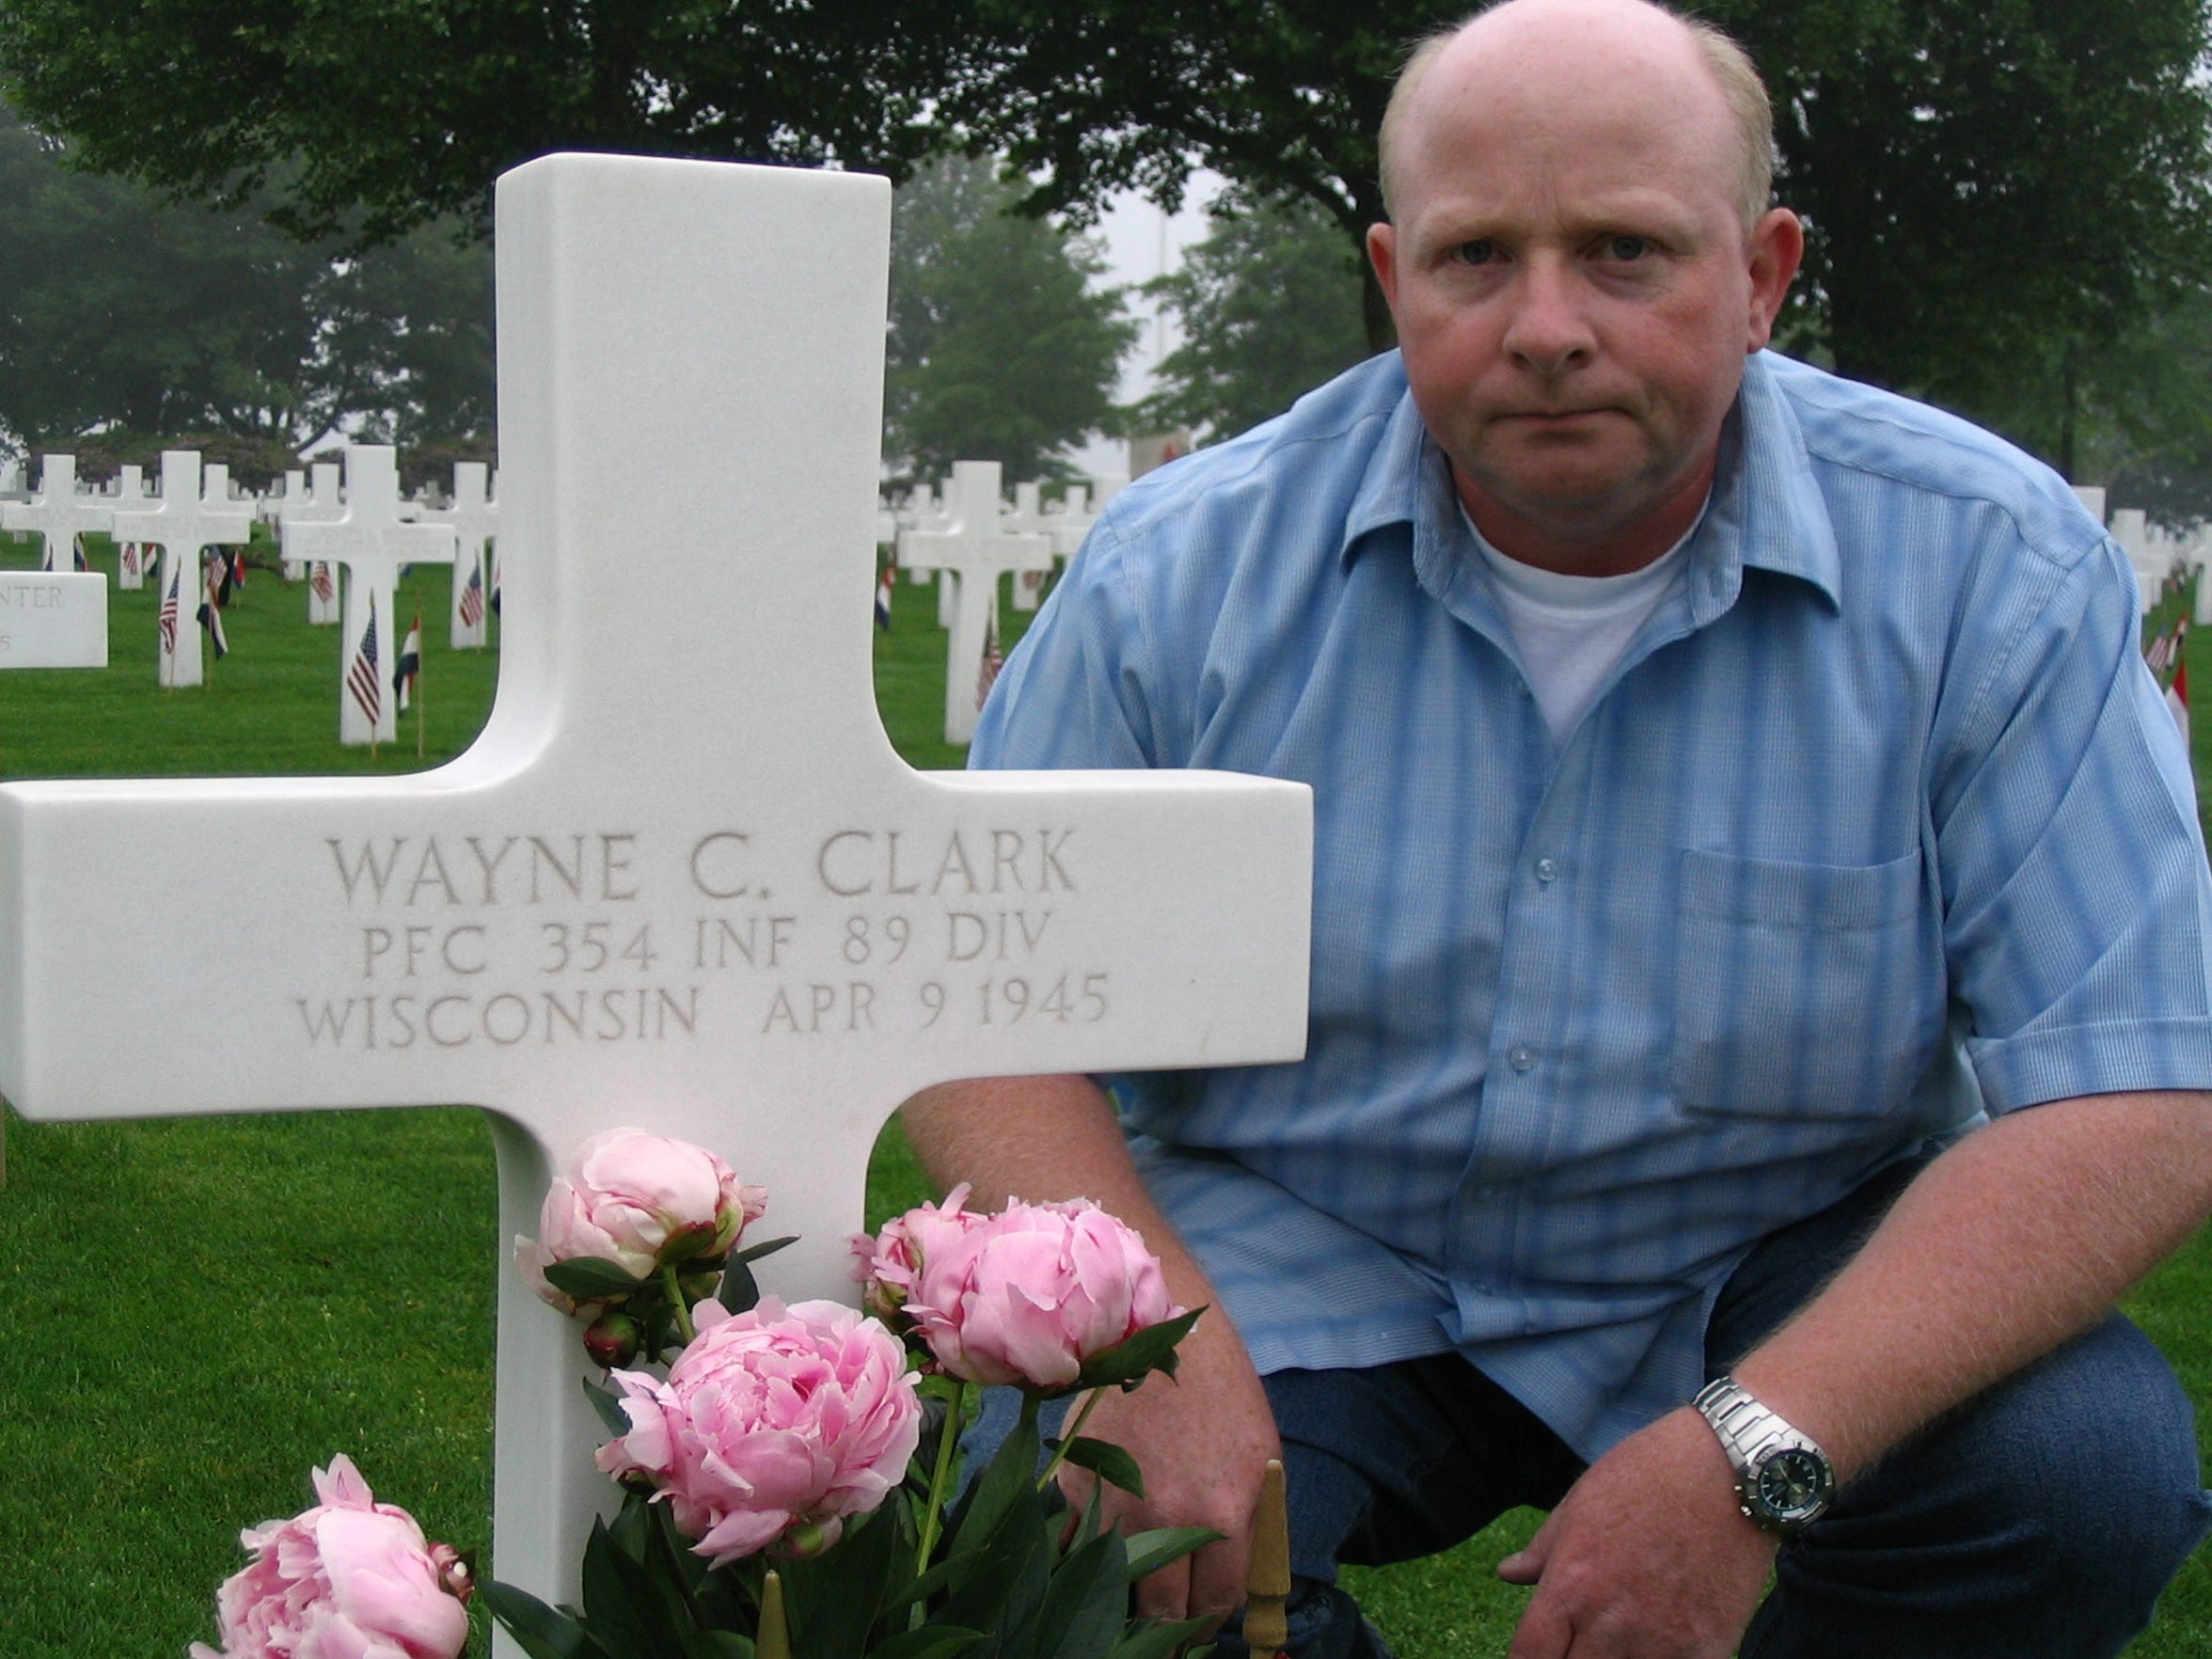 Jo Winkens of Valls, Holland, has been caring for and visiting the gravesite of Pfc. Wayne Clark for more than a decade.